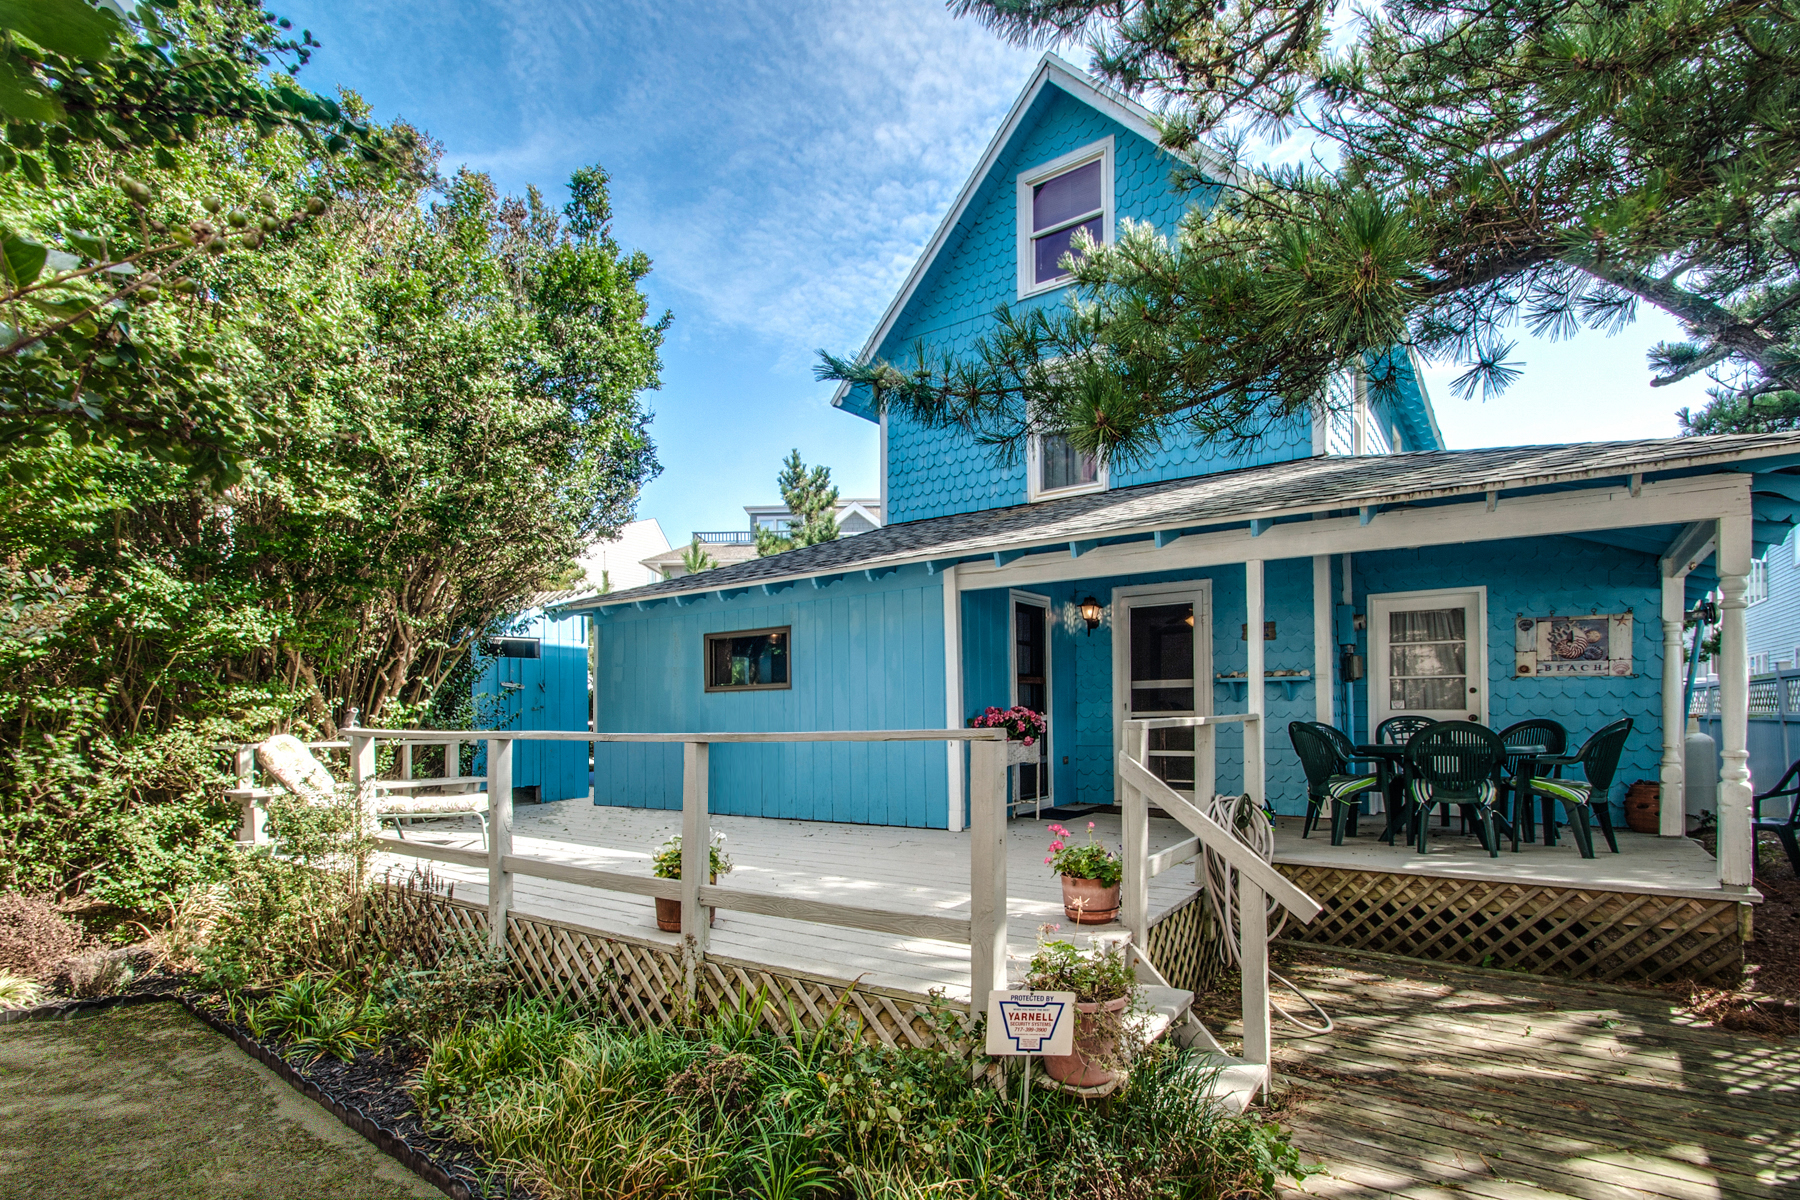 Property For Sale at 9 Mckinley Street , Dewey Beach, DE 19971